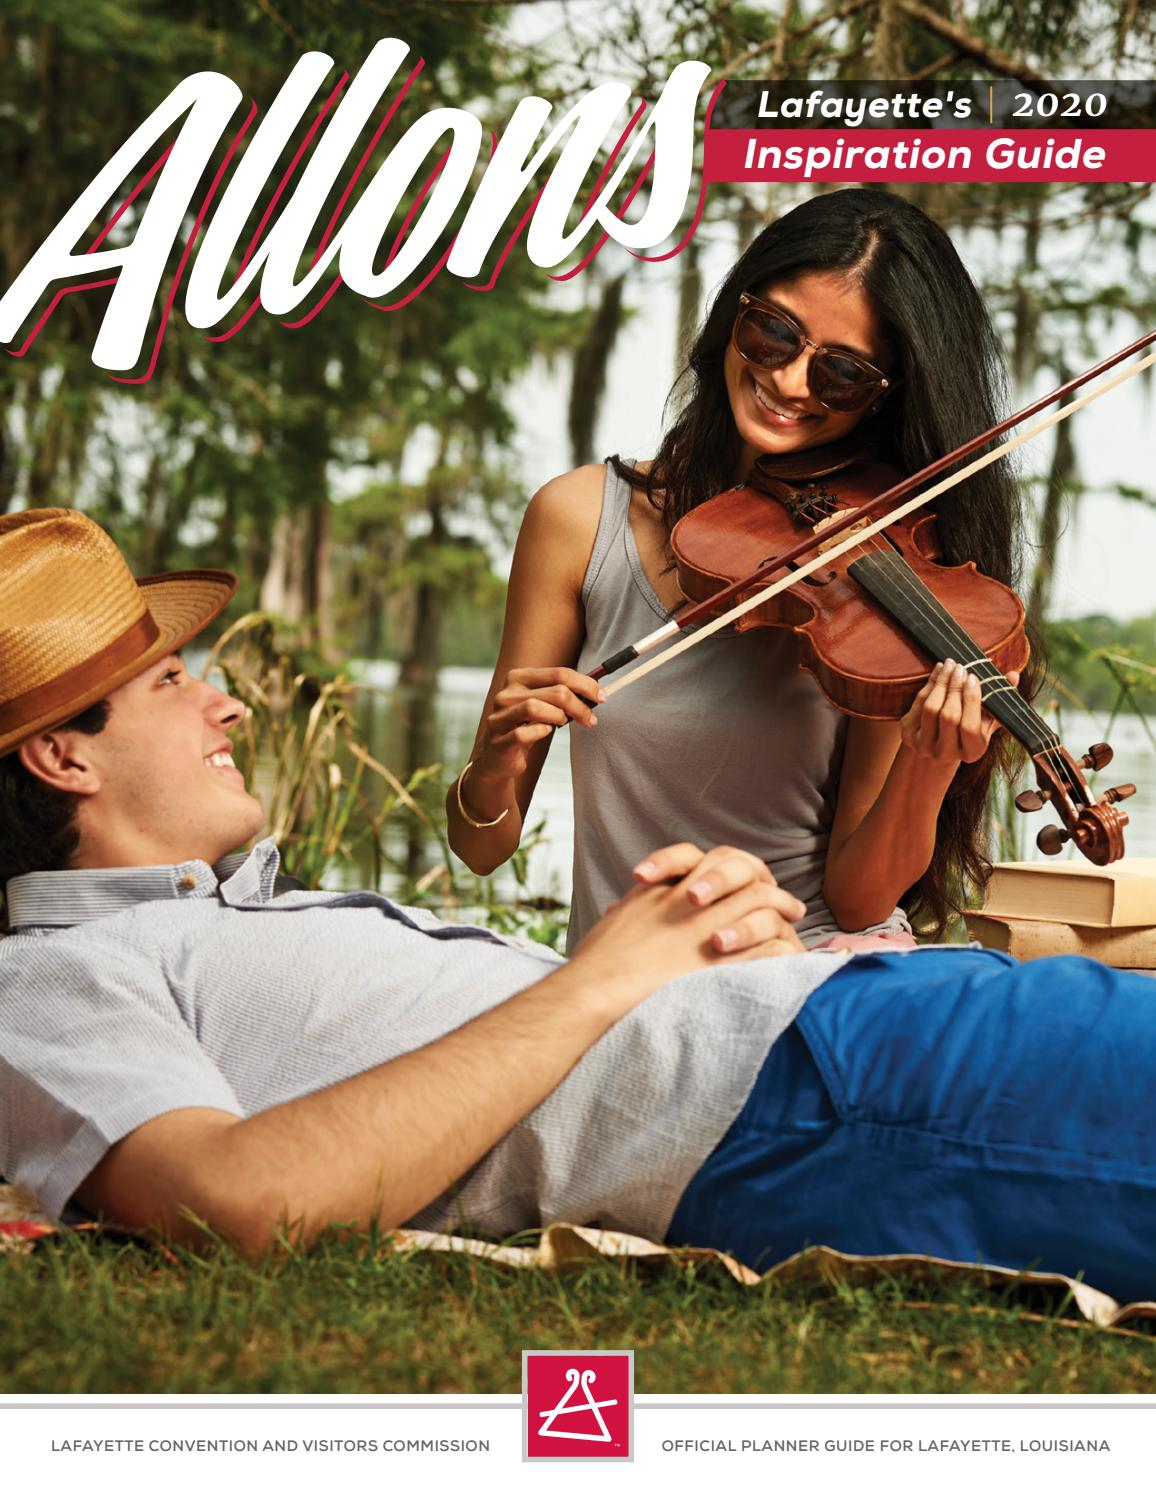 Cma Christmas 2020 Cast Violinist Allons Inspiration Guide by Lafayette Travel (2020) by Lafayette